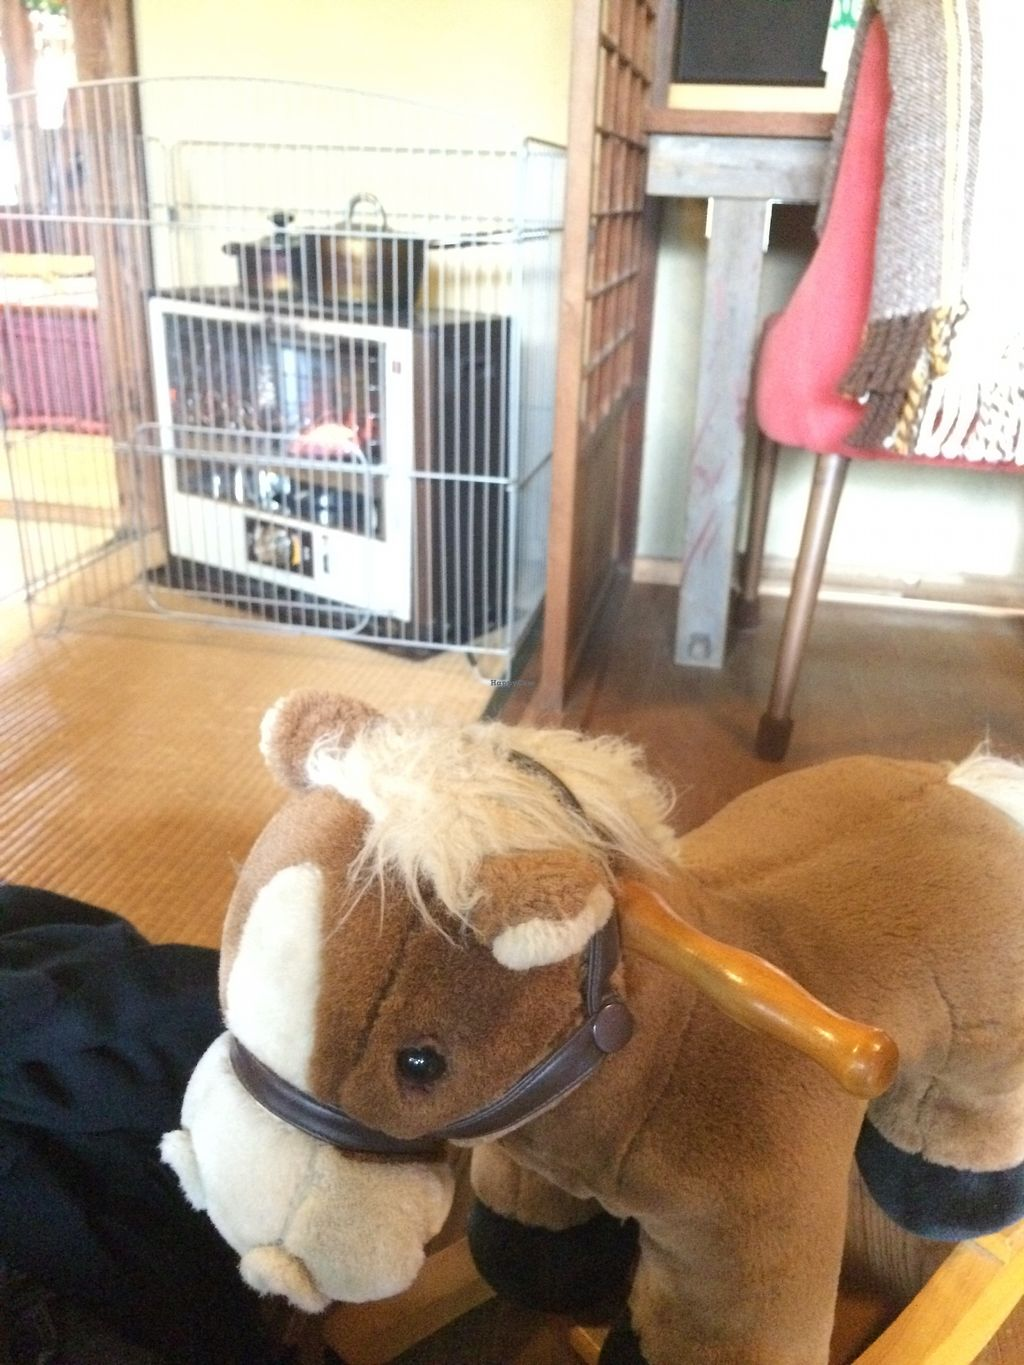 """Photo of Pace  by <a href=""""/members/profile/twocats"""">twocats</a> <br/>Rocking horse for kids <br/> November 6, 2017  - <a href='/contact/abuse/image/94047/322464'>Report</a>"""